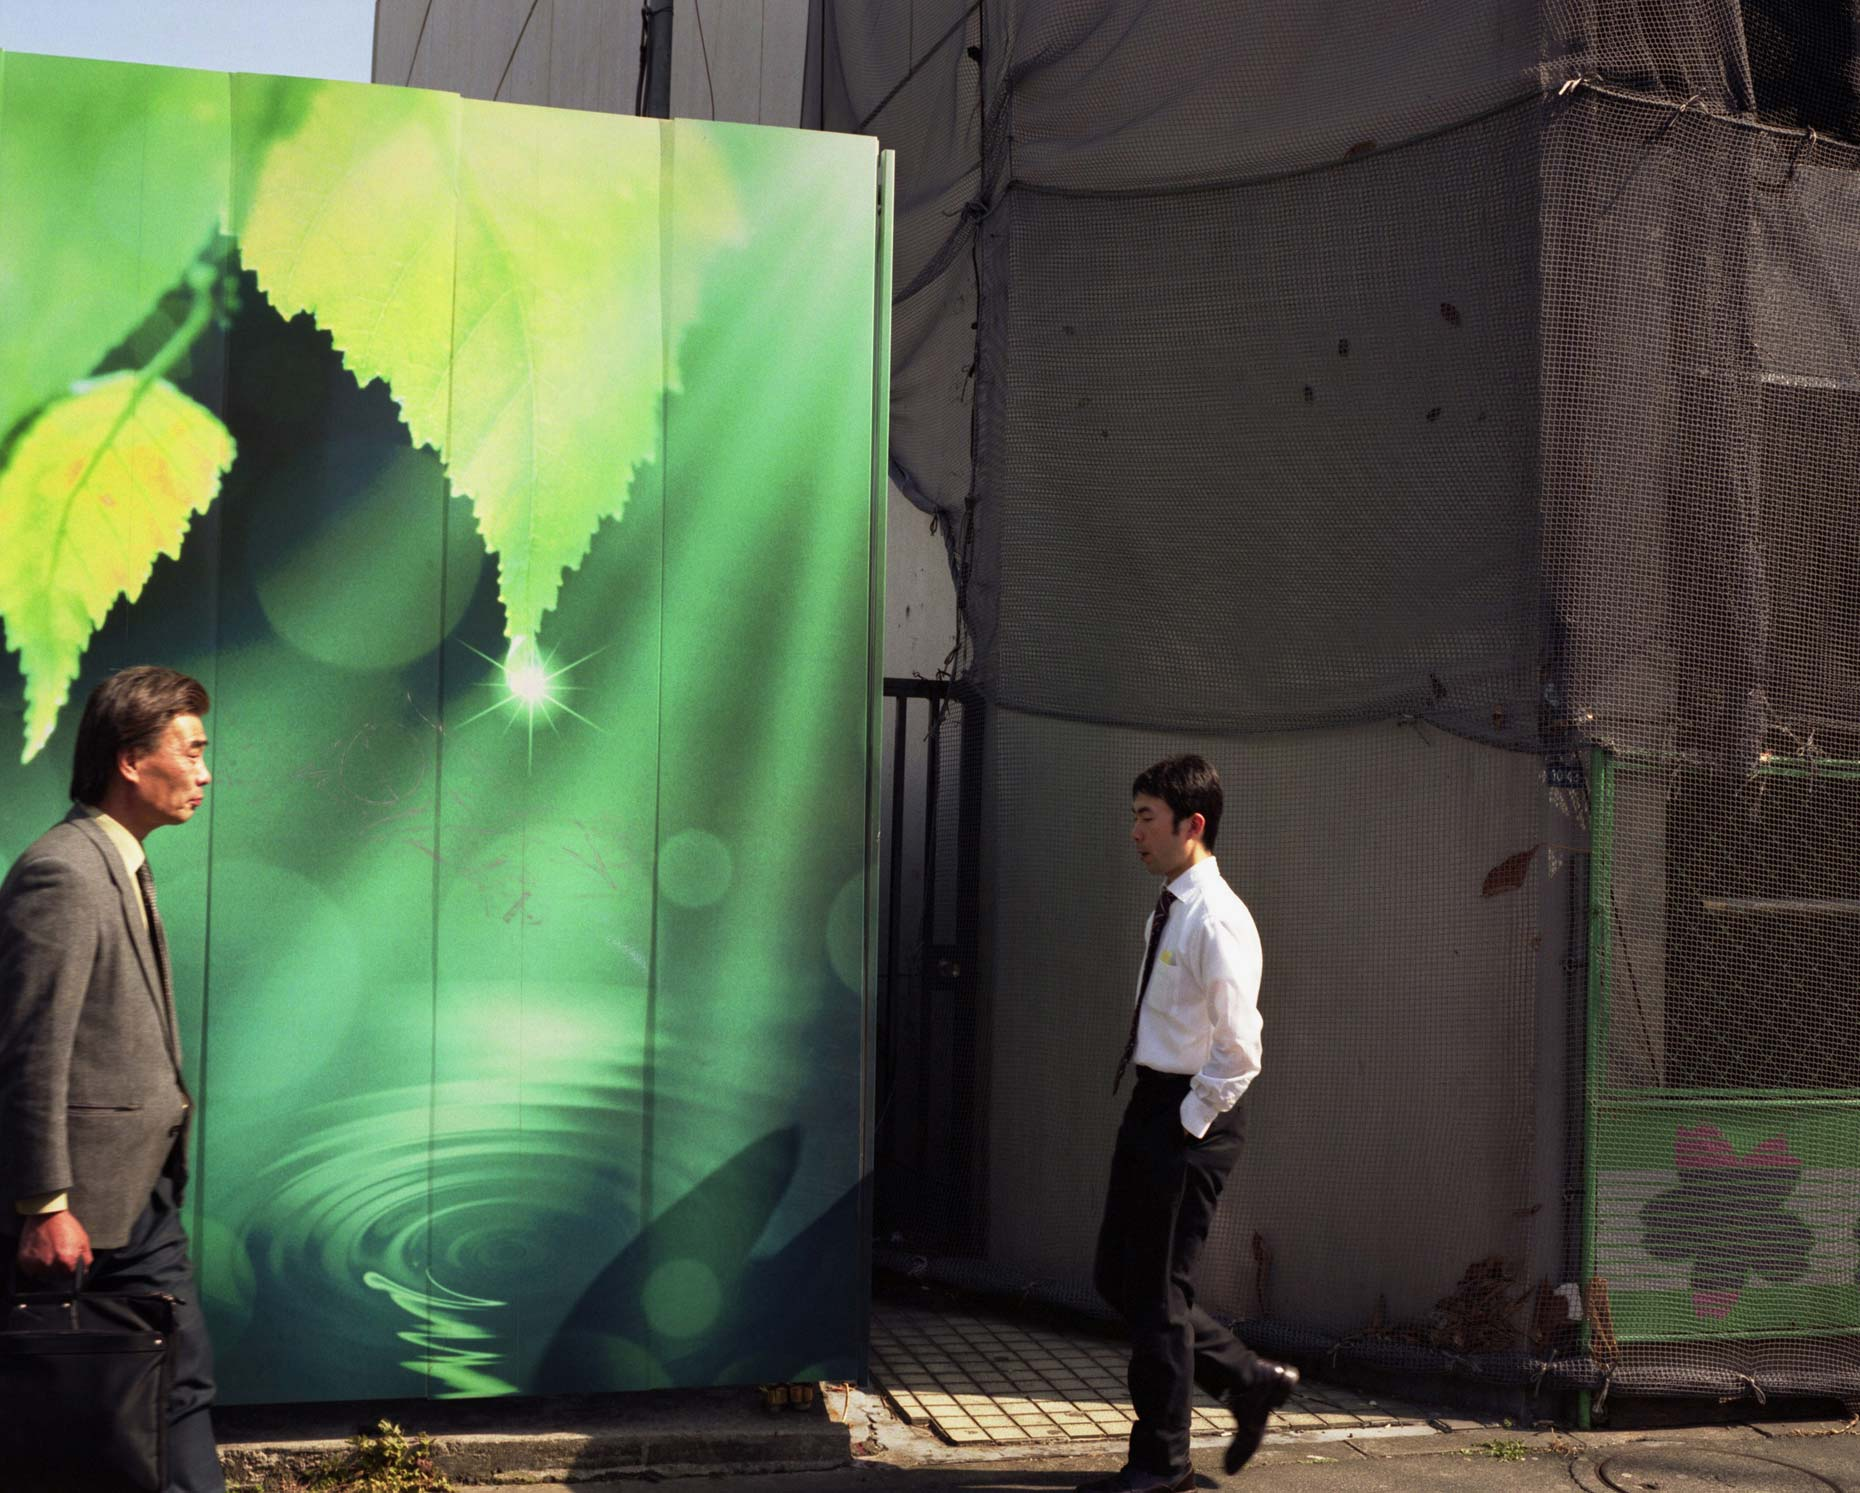 Businessman walking past Billboards depicting nature, Tokyo, Japan.